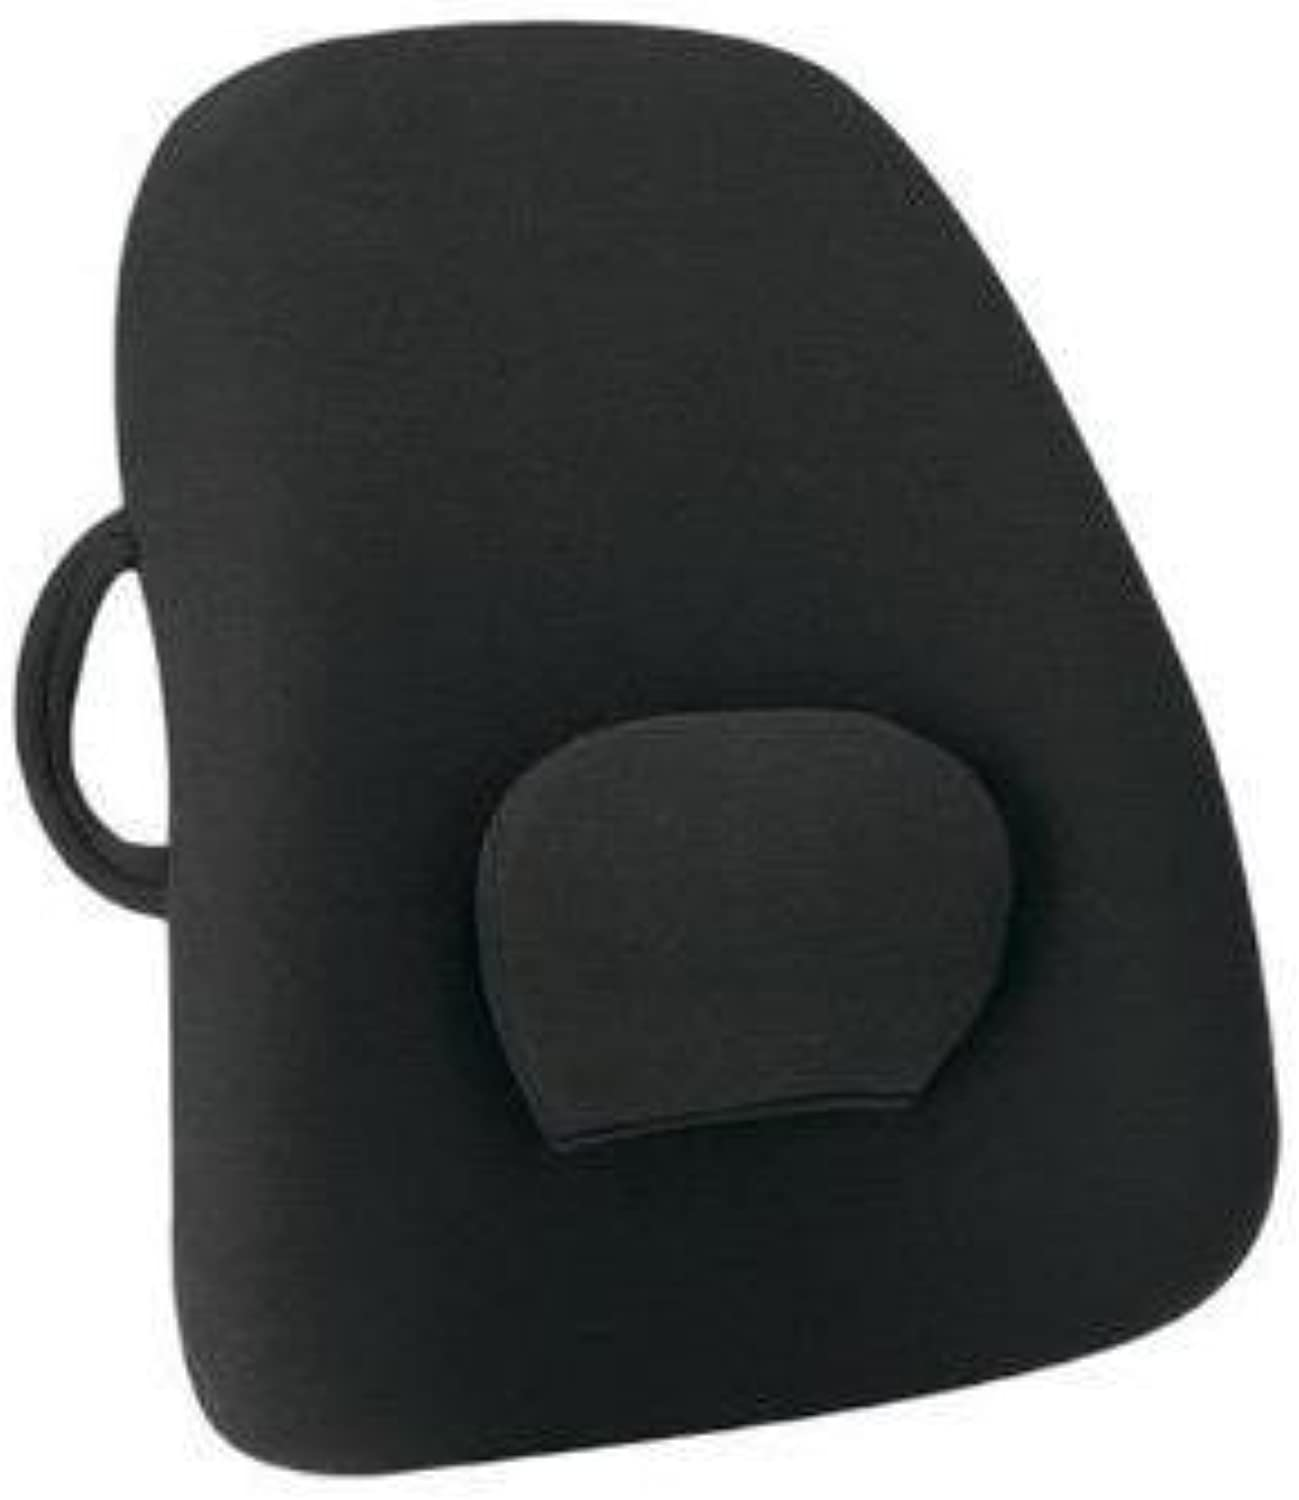 Ergonomic Orthopedic Back Support Backrest  Improves Posture, Relieves Back Pain & Discomfort, Includes Adjustable Lumbar Pad  by BodyHealt BHLS101